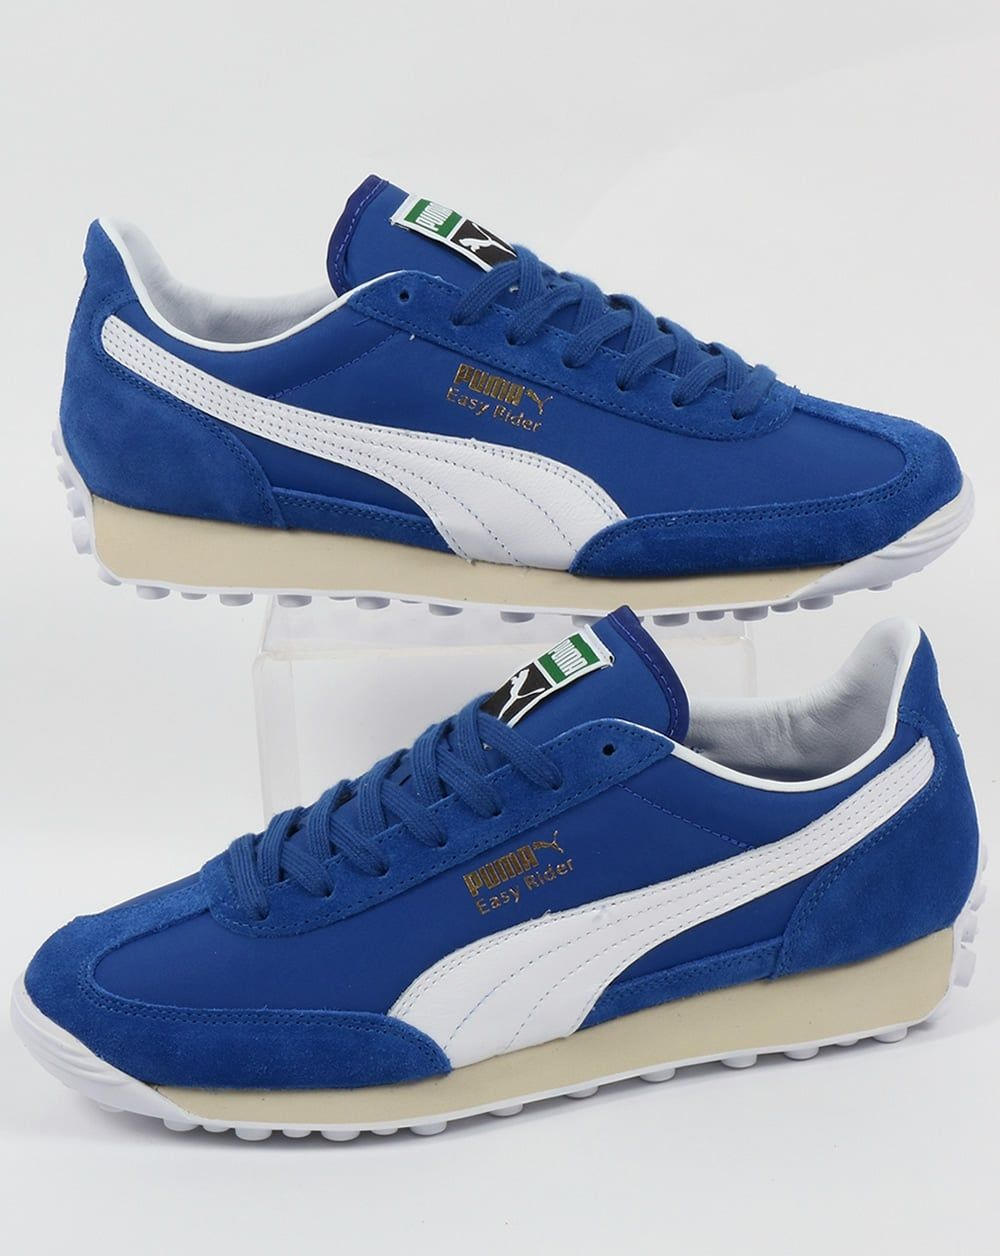 Puma Easy Rider VTG Trainers Royal Blue/White | Easy rider ...